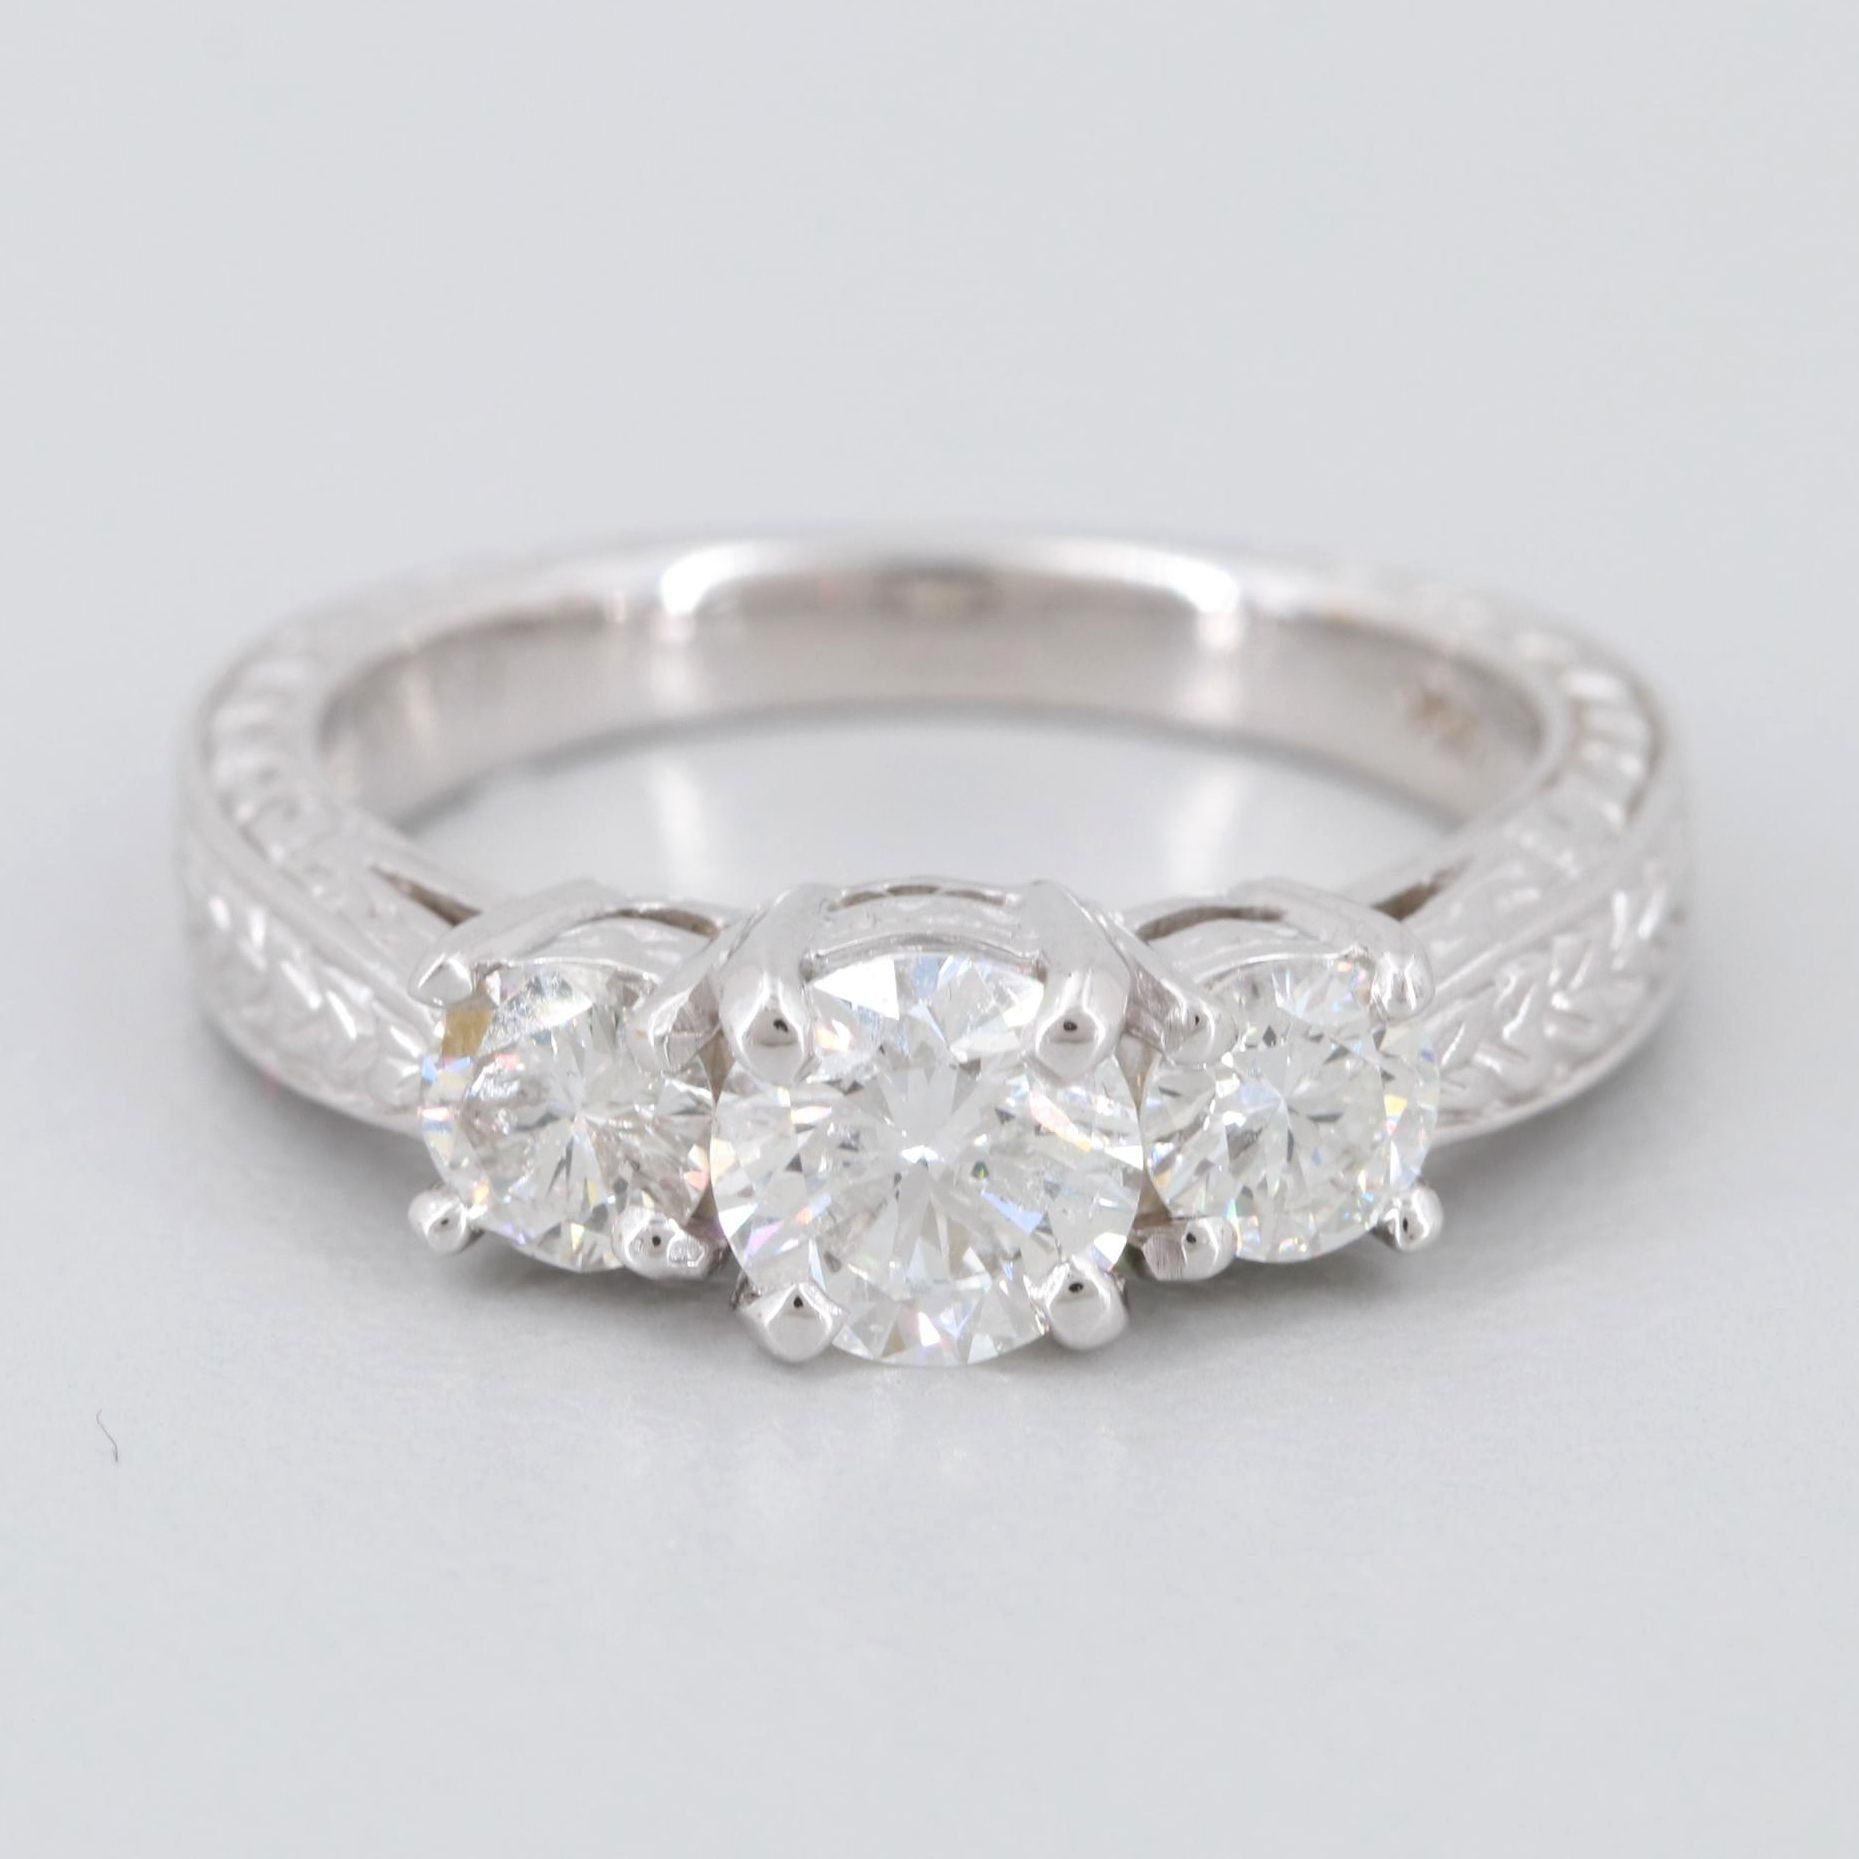 14K White Gold 1.20 CTW Diamond Ring